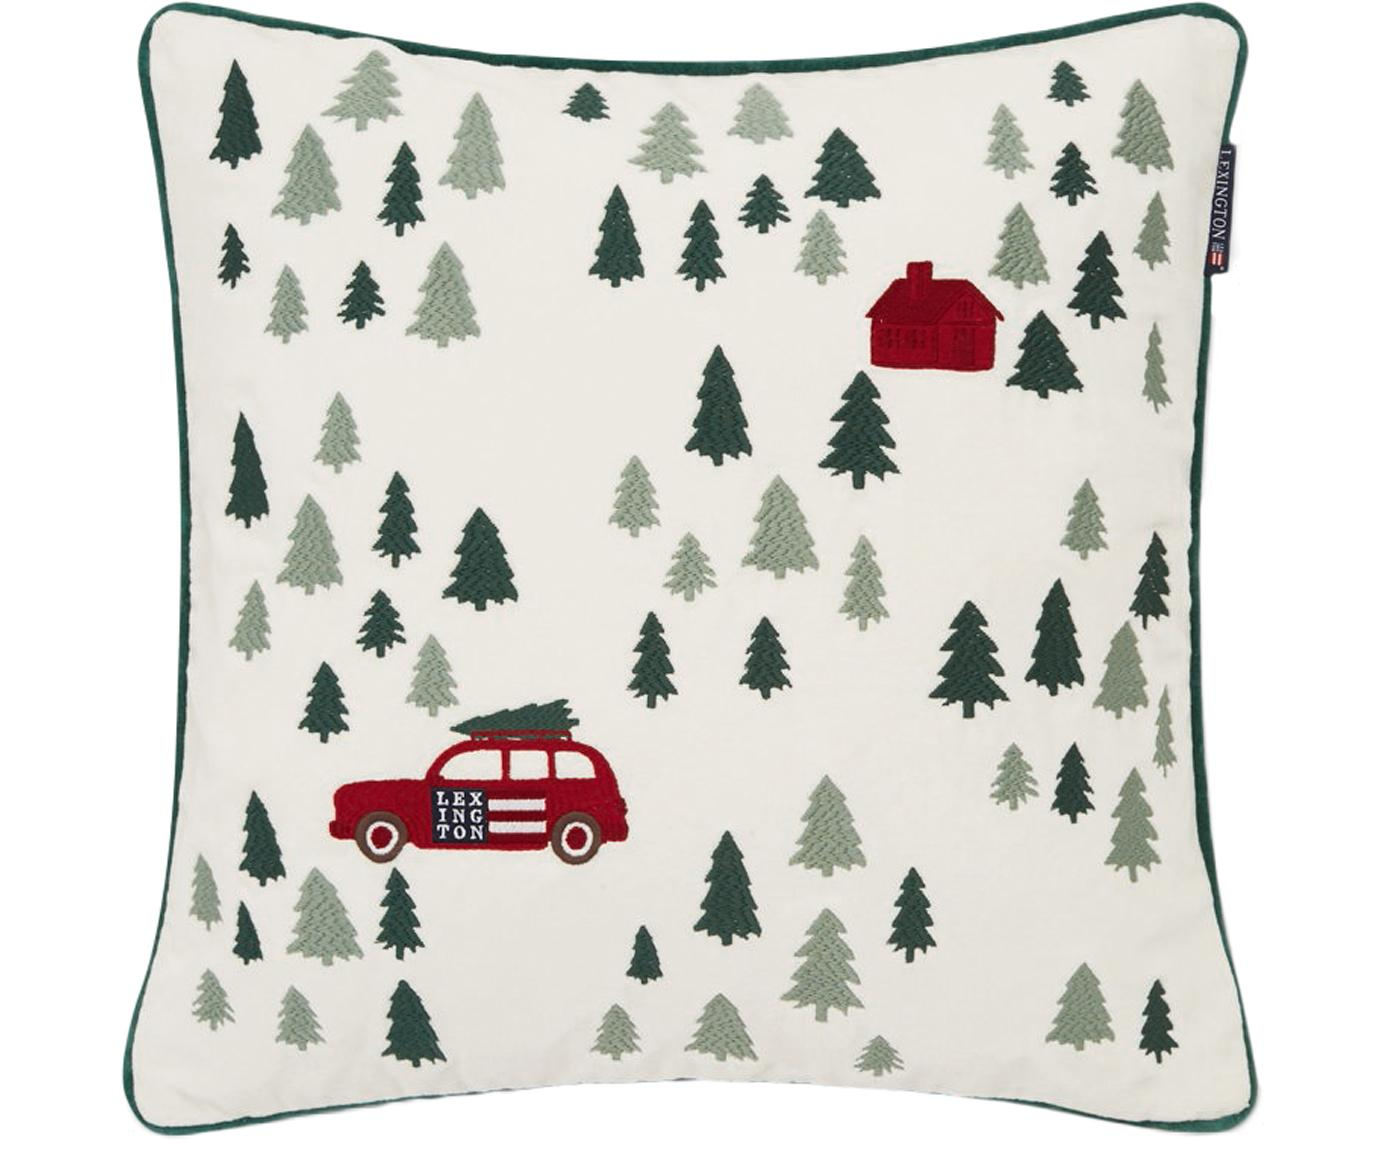 Federa in velluto Holiday, Cotone, Bianco, rosso, verde, Larg. 50 x Lung. 50 cm